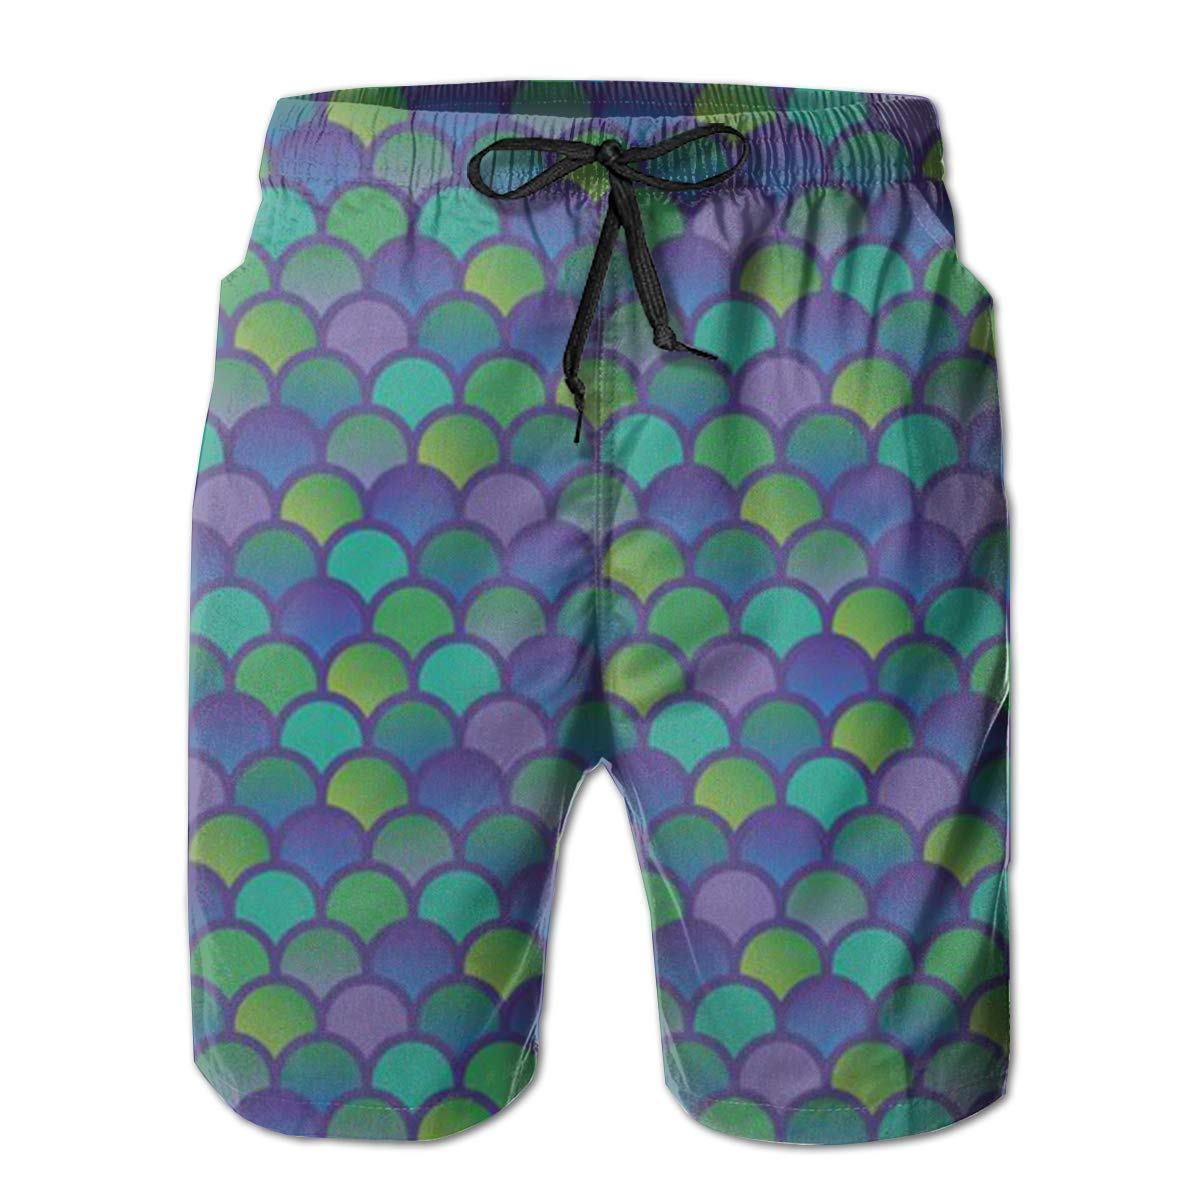 MikonsuRainbow Fish Scales Pattern Mens Colorful Swim Trunks Beach Board Shorts with Lining